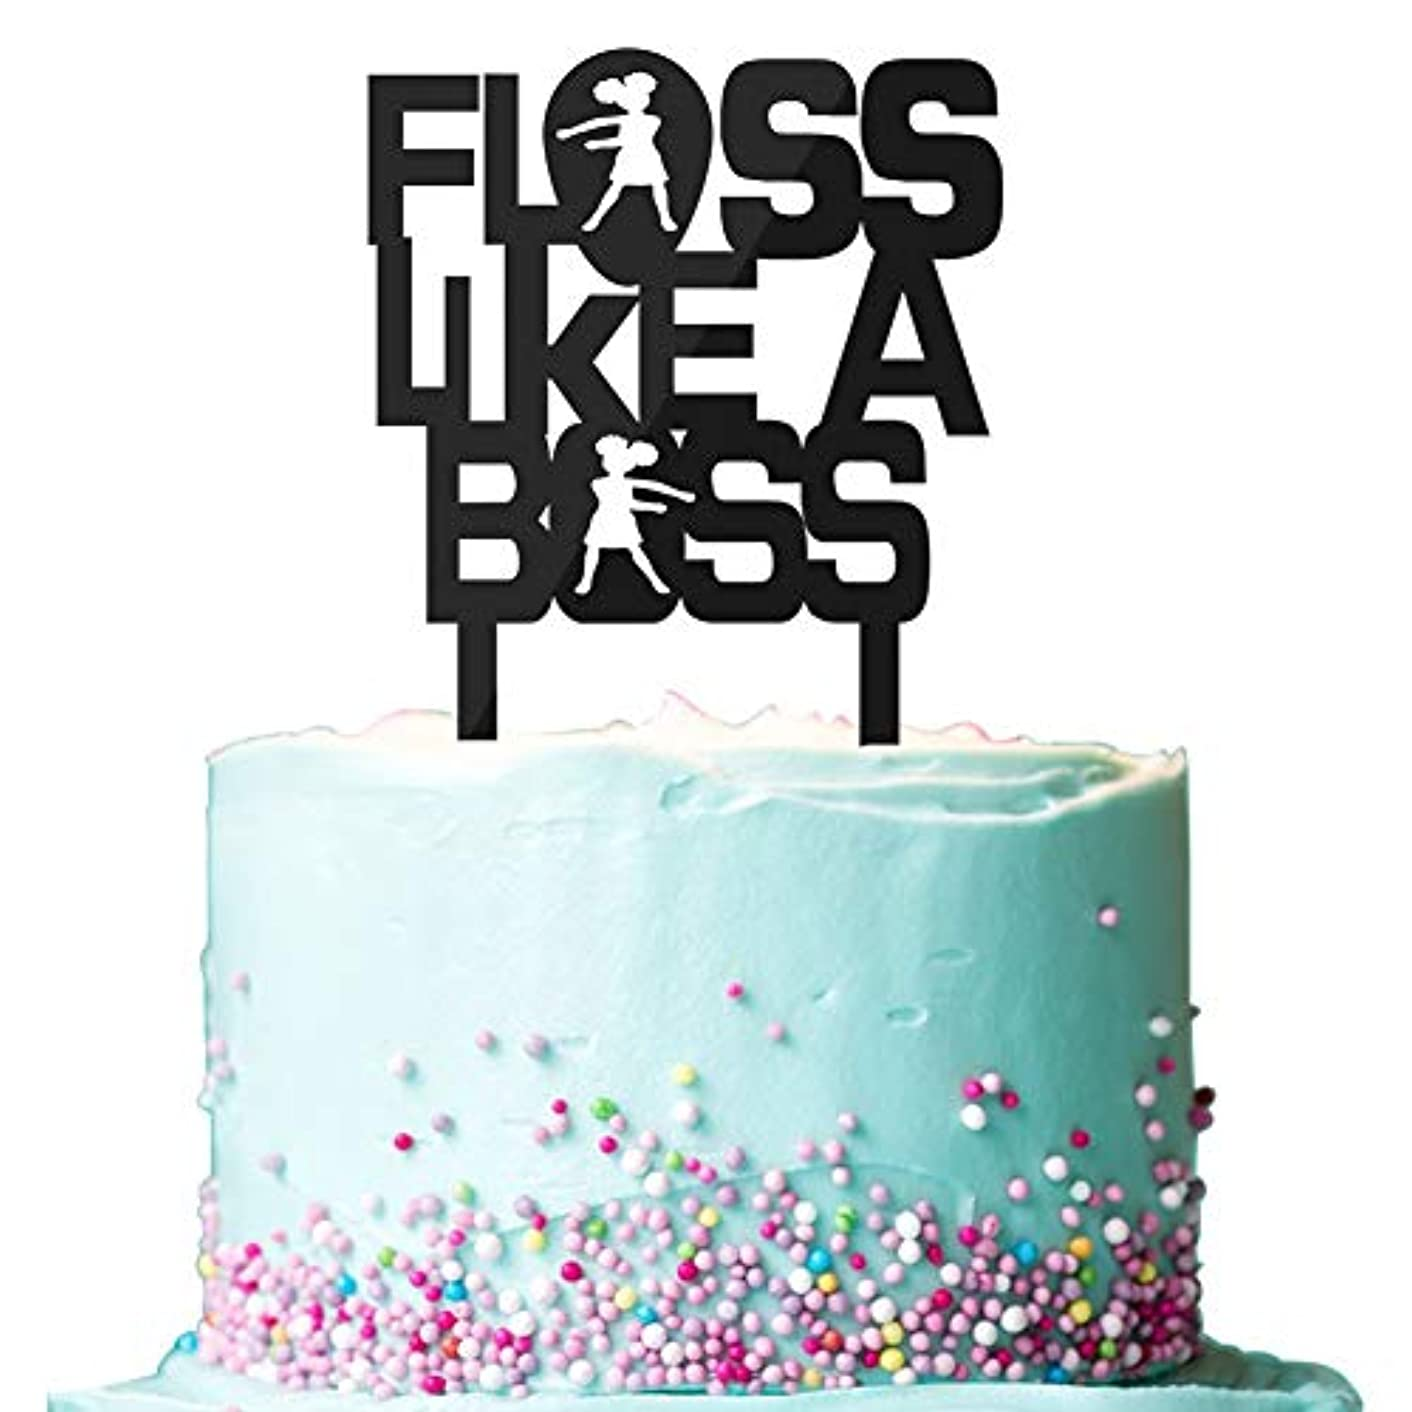 Floss Like A Boss Cake Toppers for Girls, Video Game Floss Dance Birthday Cake Decoration Party Supplies